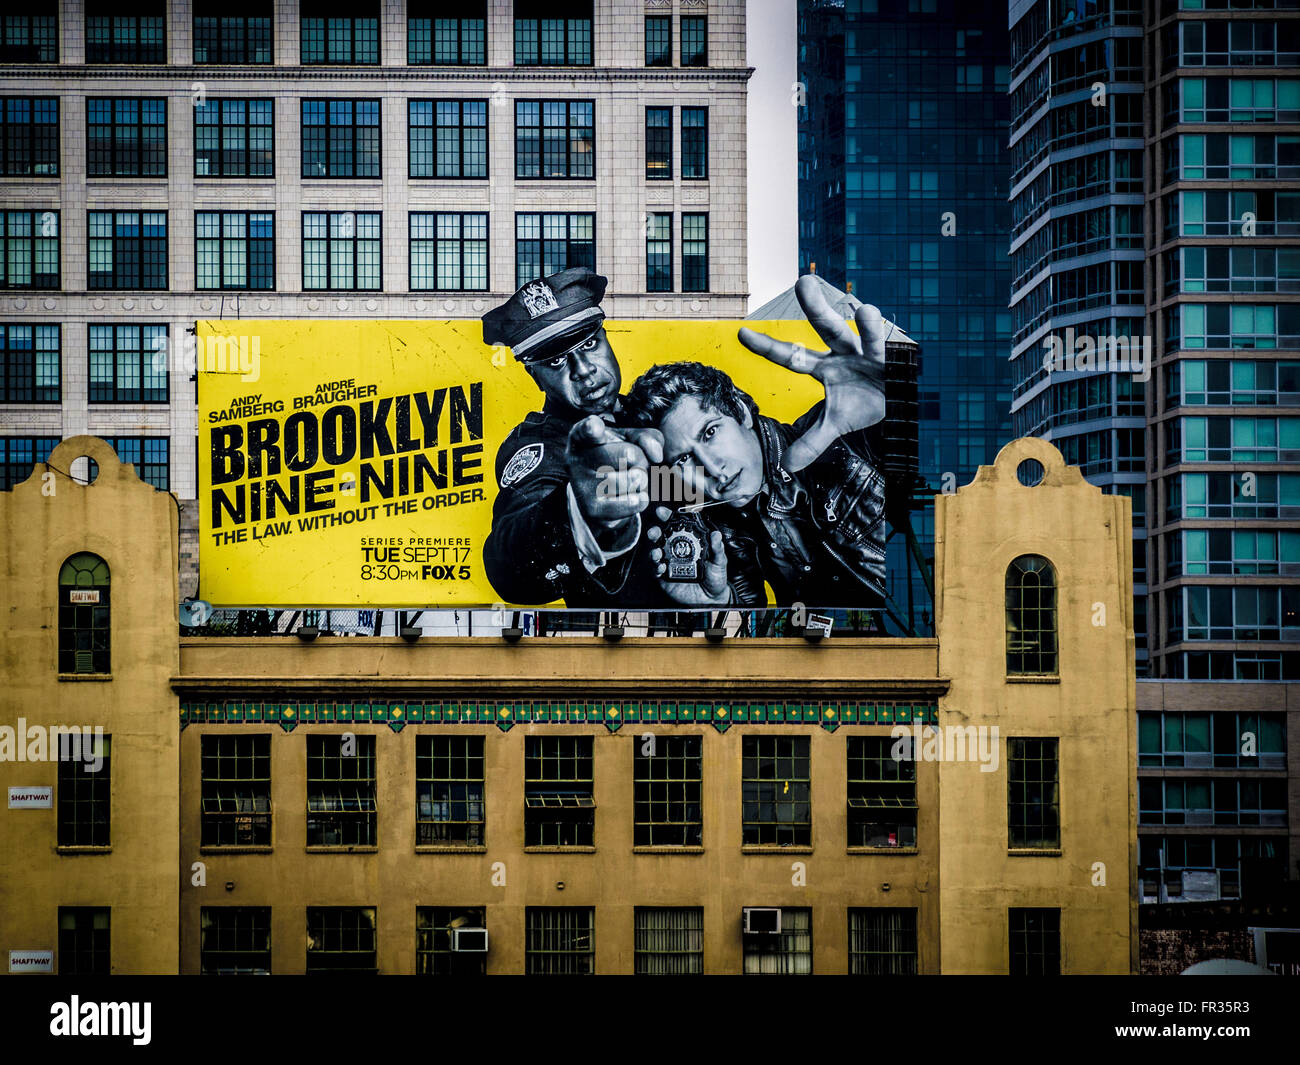 Brooklyn Nine-Nine advertising billboard on roof of traditional buildings, New York City, USA. - Stock Image